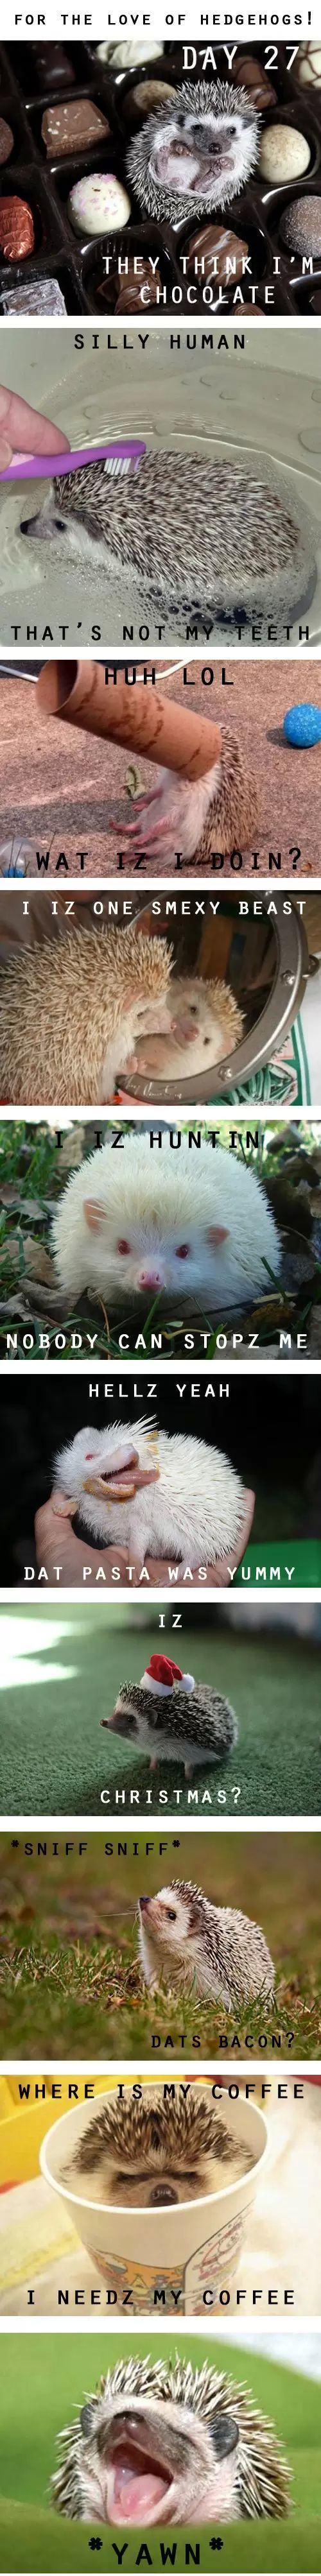 For The Love Of Hedgehogs! - LoL Champ